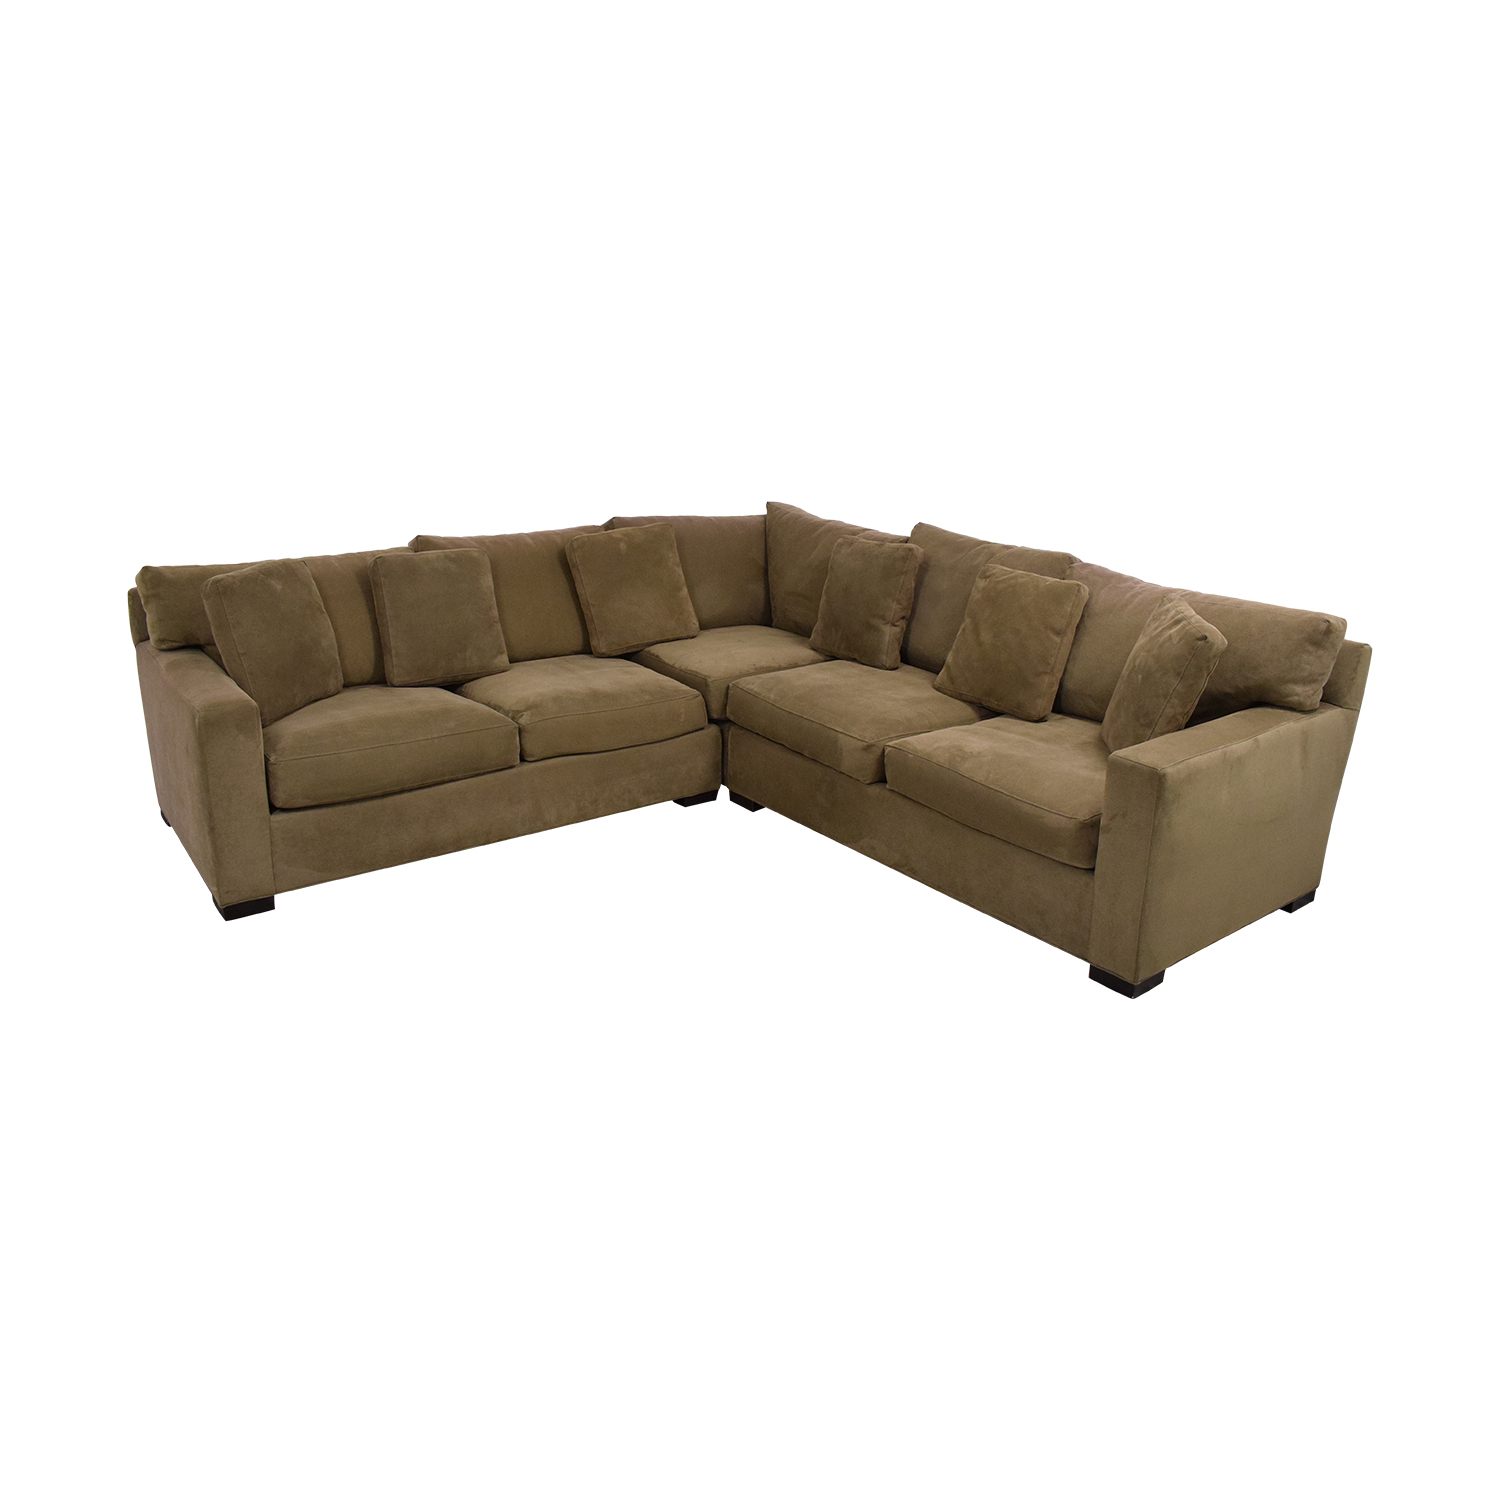 shop Crate & Barrel Axis II 3-Piece Sectional Sofa Crate & Barrel Sofas